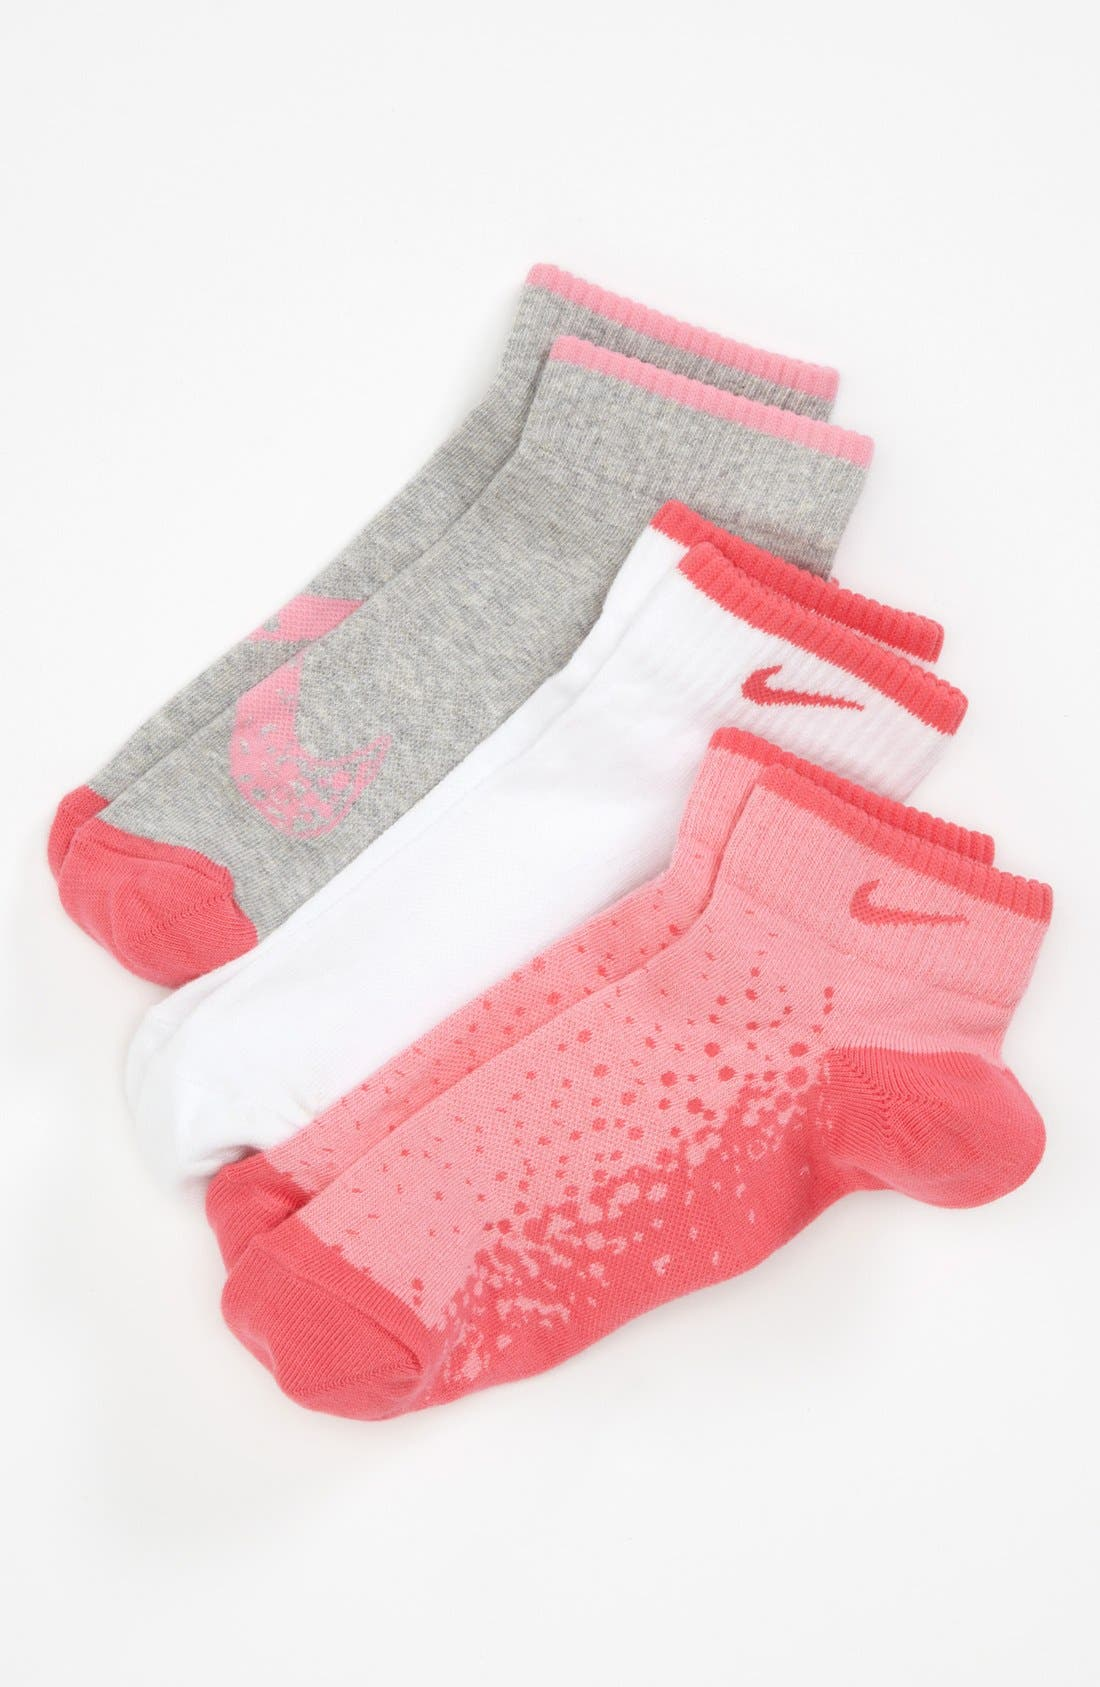 Main Image - Nike 'Graphic' Low Cut Socks (3-Pack) (Big Girls) (Online Only)